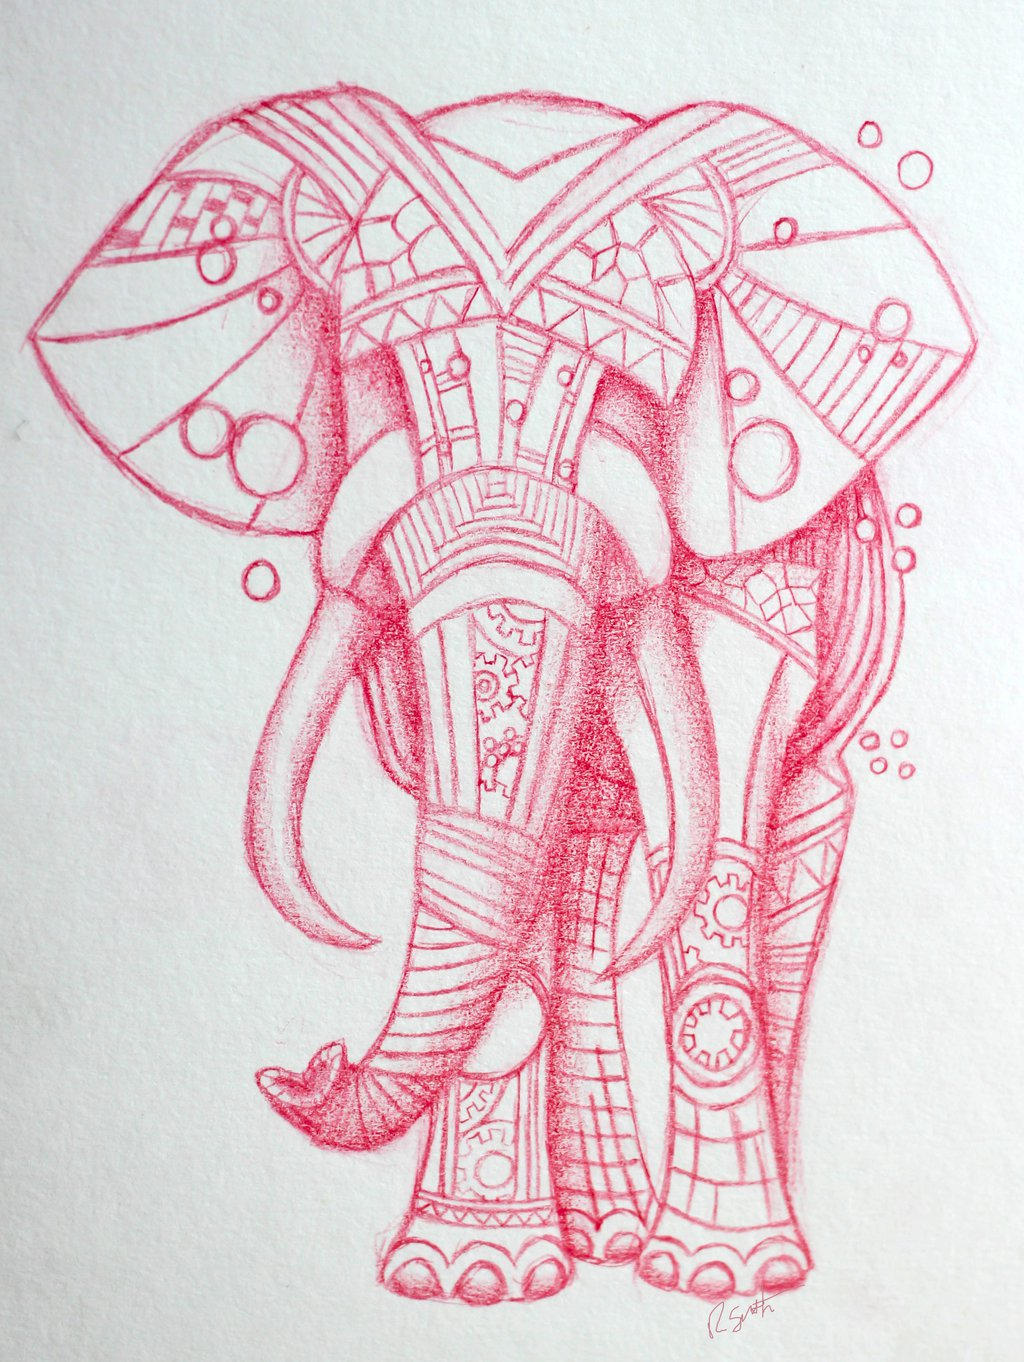 Starry Tribal Elephant Tattoo Art